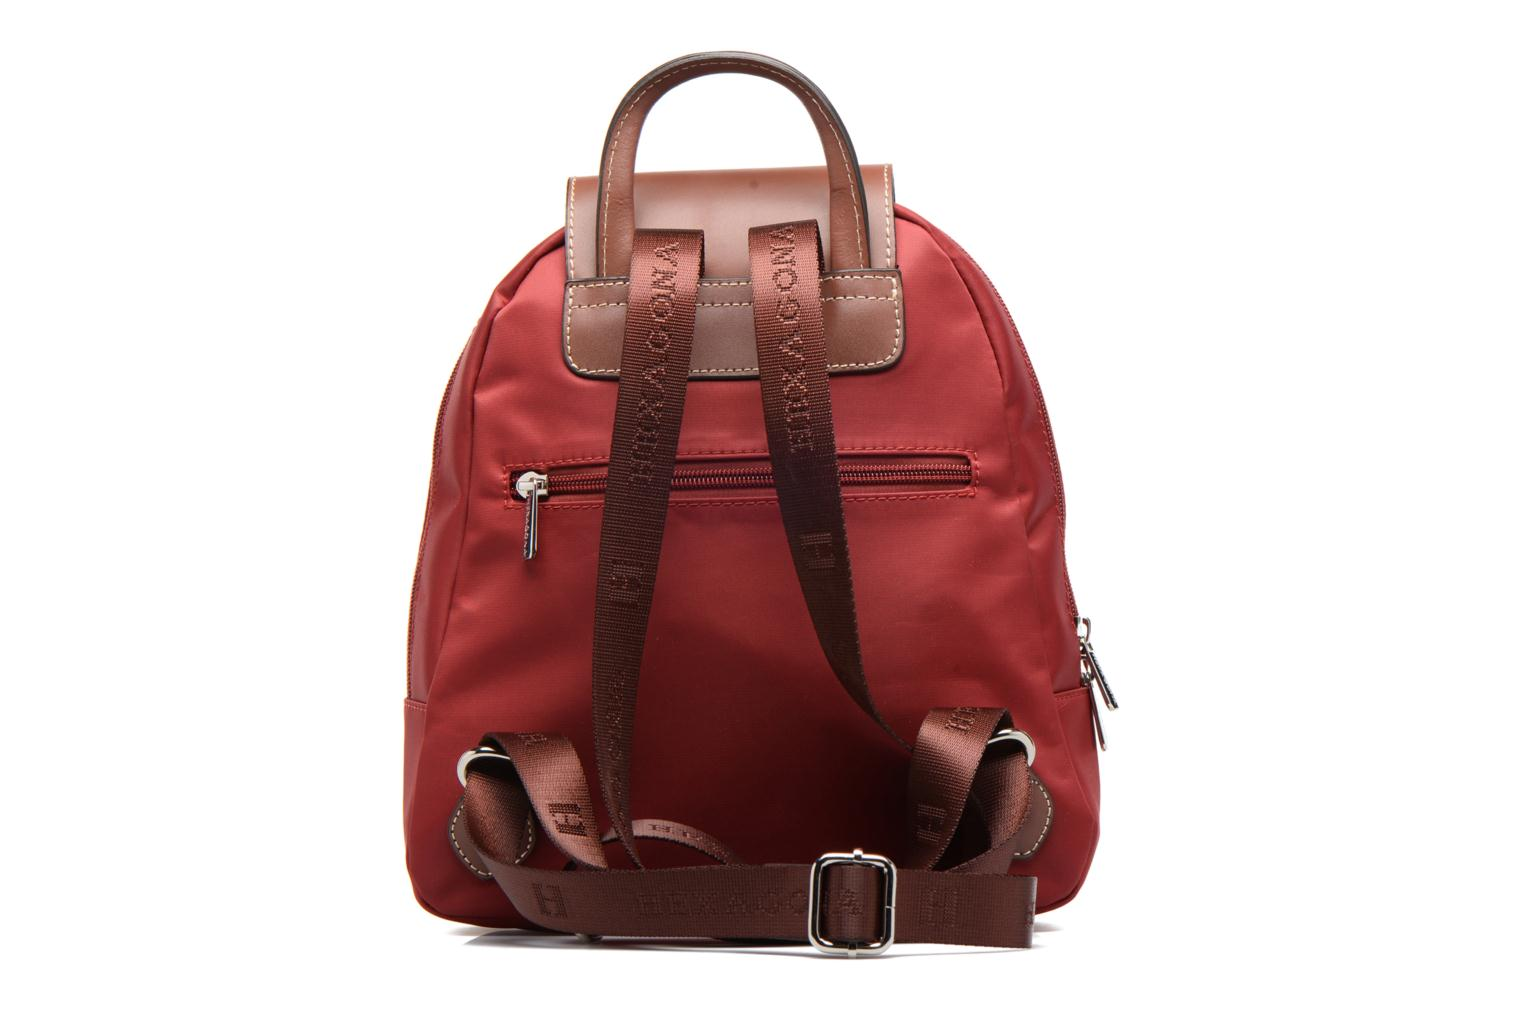 Hexagona Rouge nylon à Sac dos TxwqARTZB